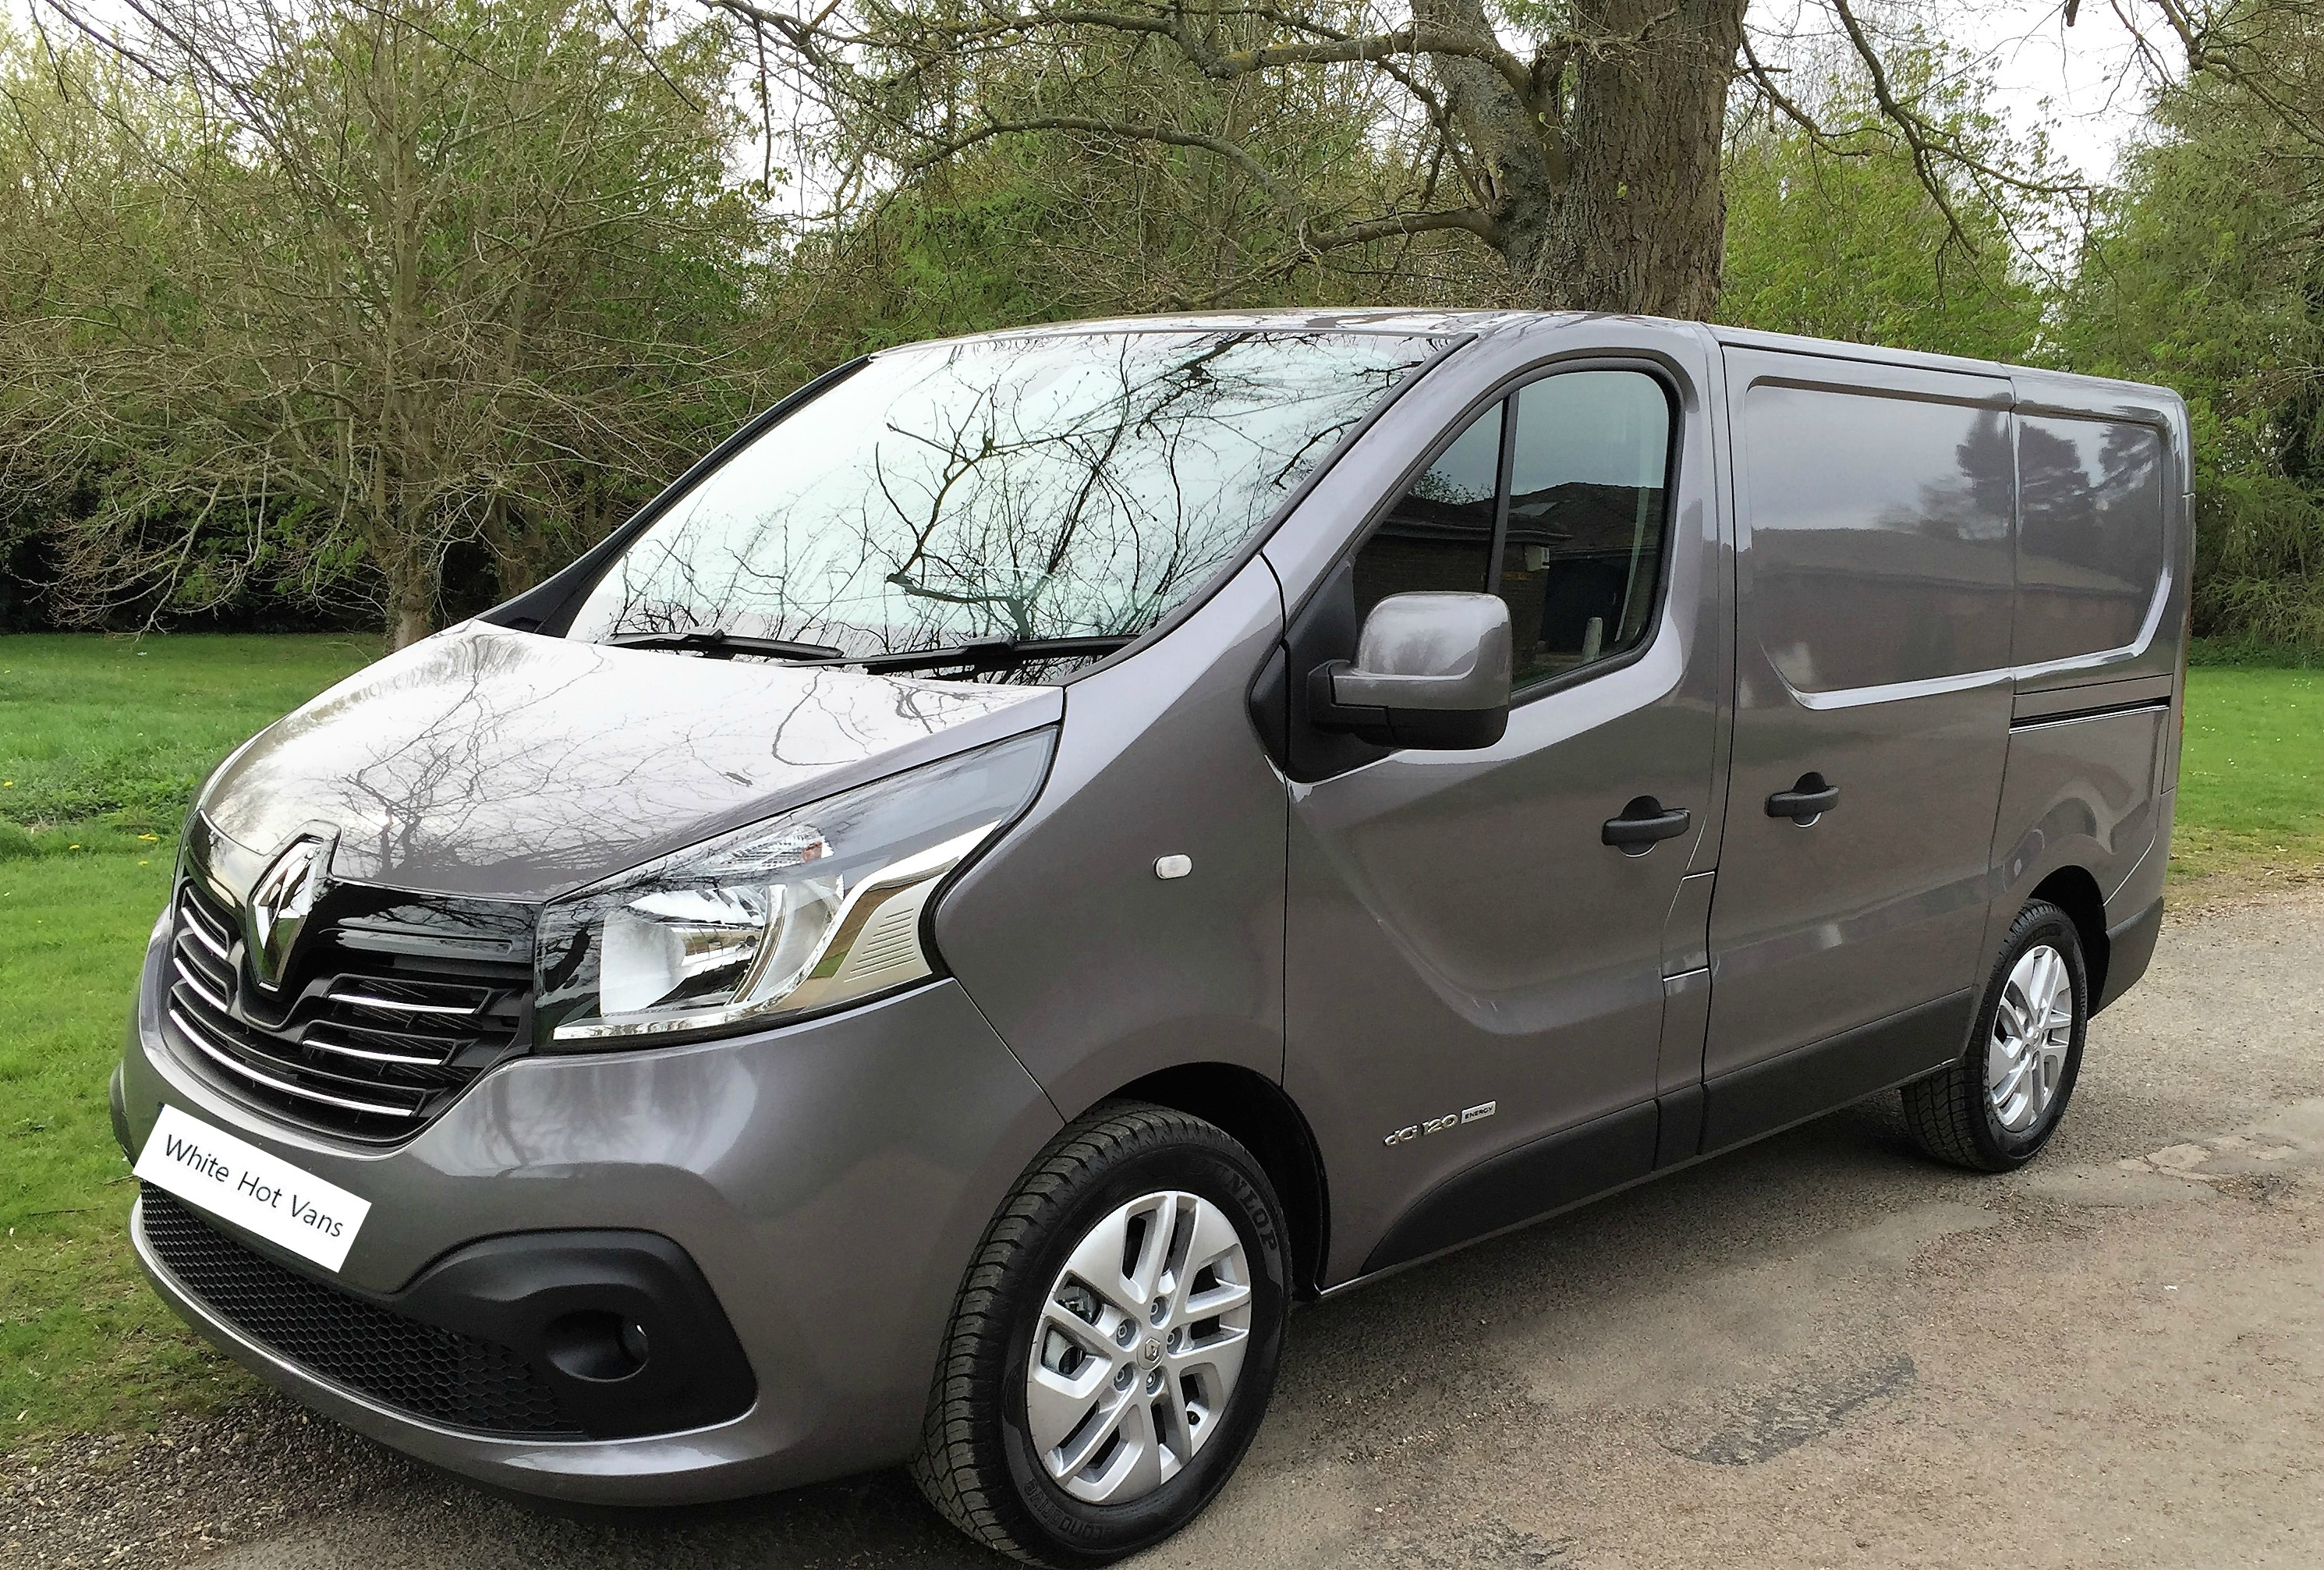 renault trafic sport sl27 energy 1 6 dci 120ps white hot vanswhite hot vans. Black Bedroom Furniture Sets. Home Design Ideas